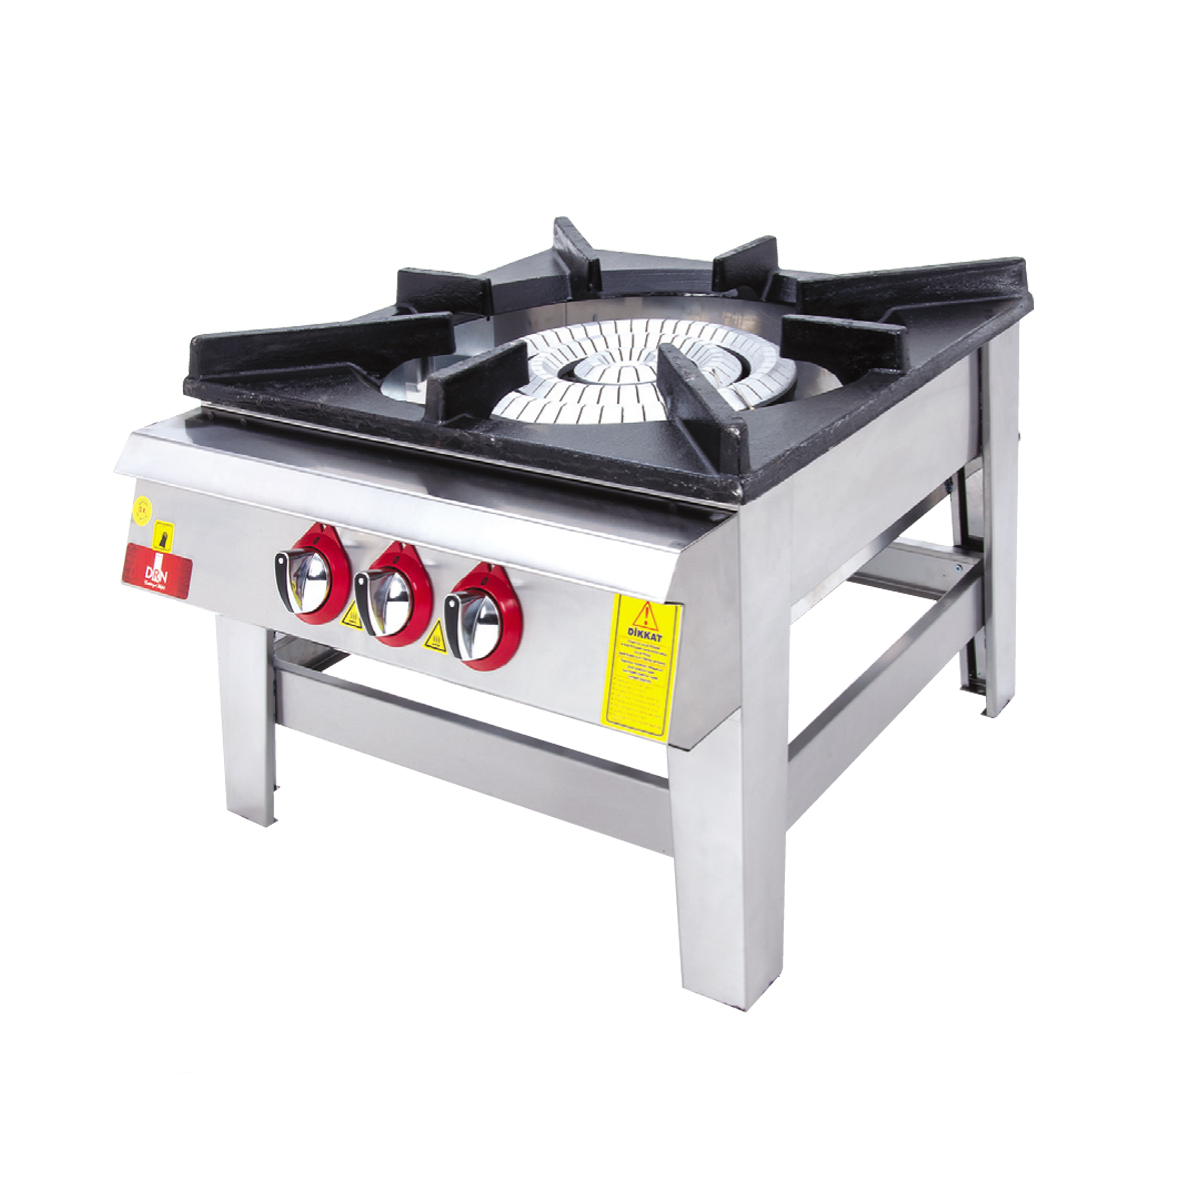 Floor Cooker - Triple Ignition - 70x70 - Gas